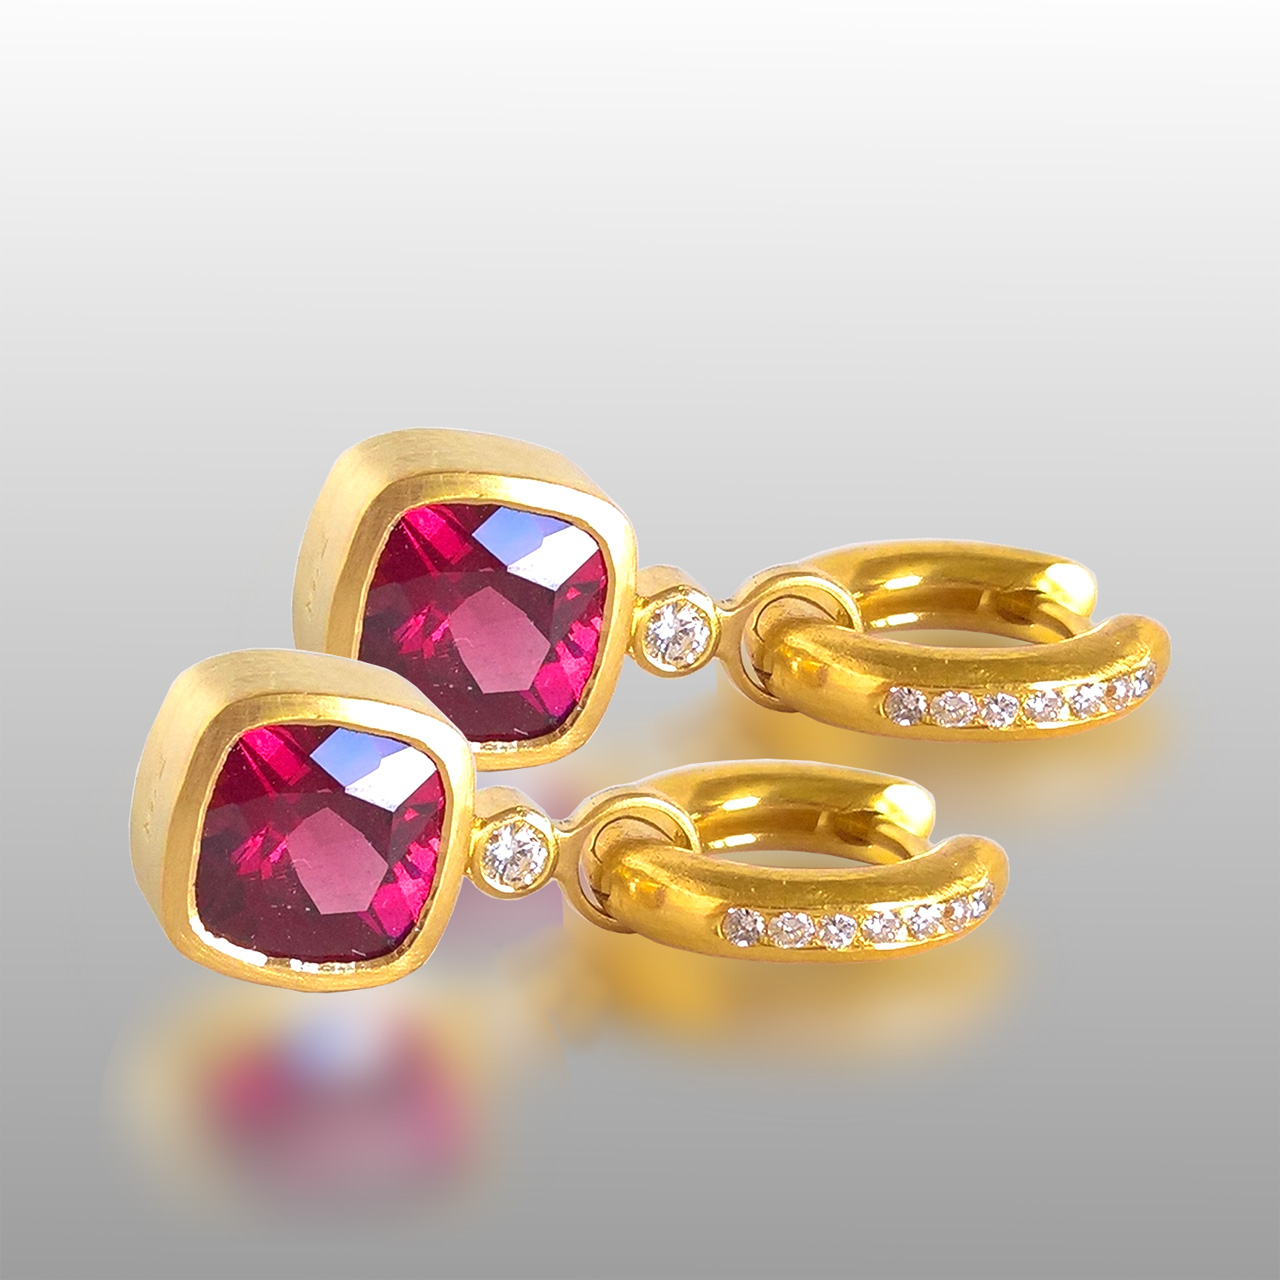 Small gold hoops with diamonds and magenta stones hanging